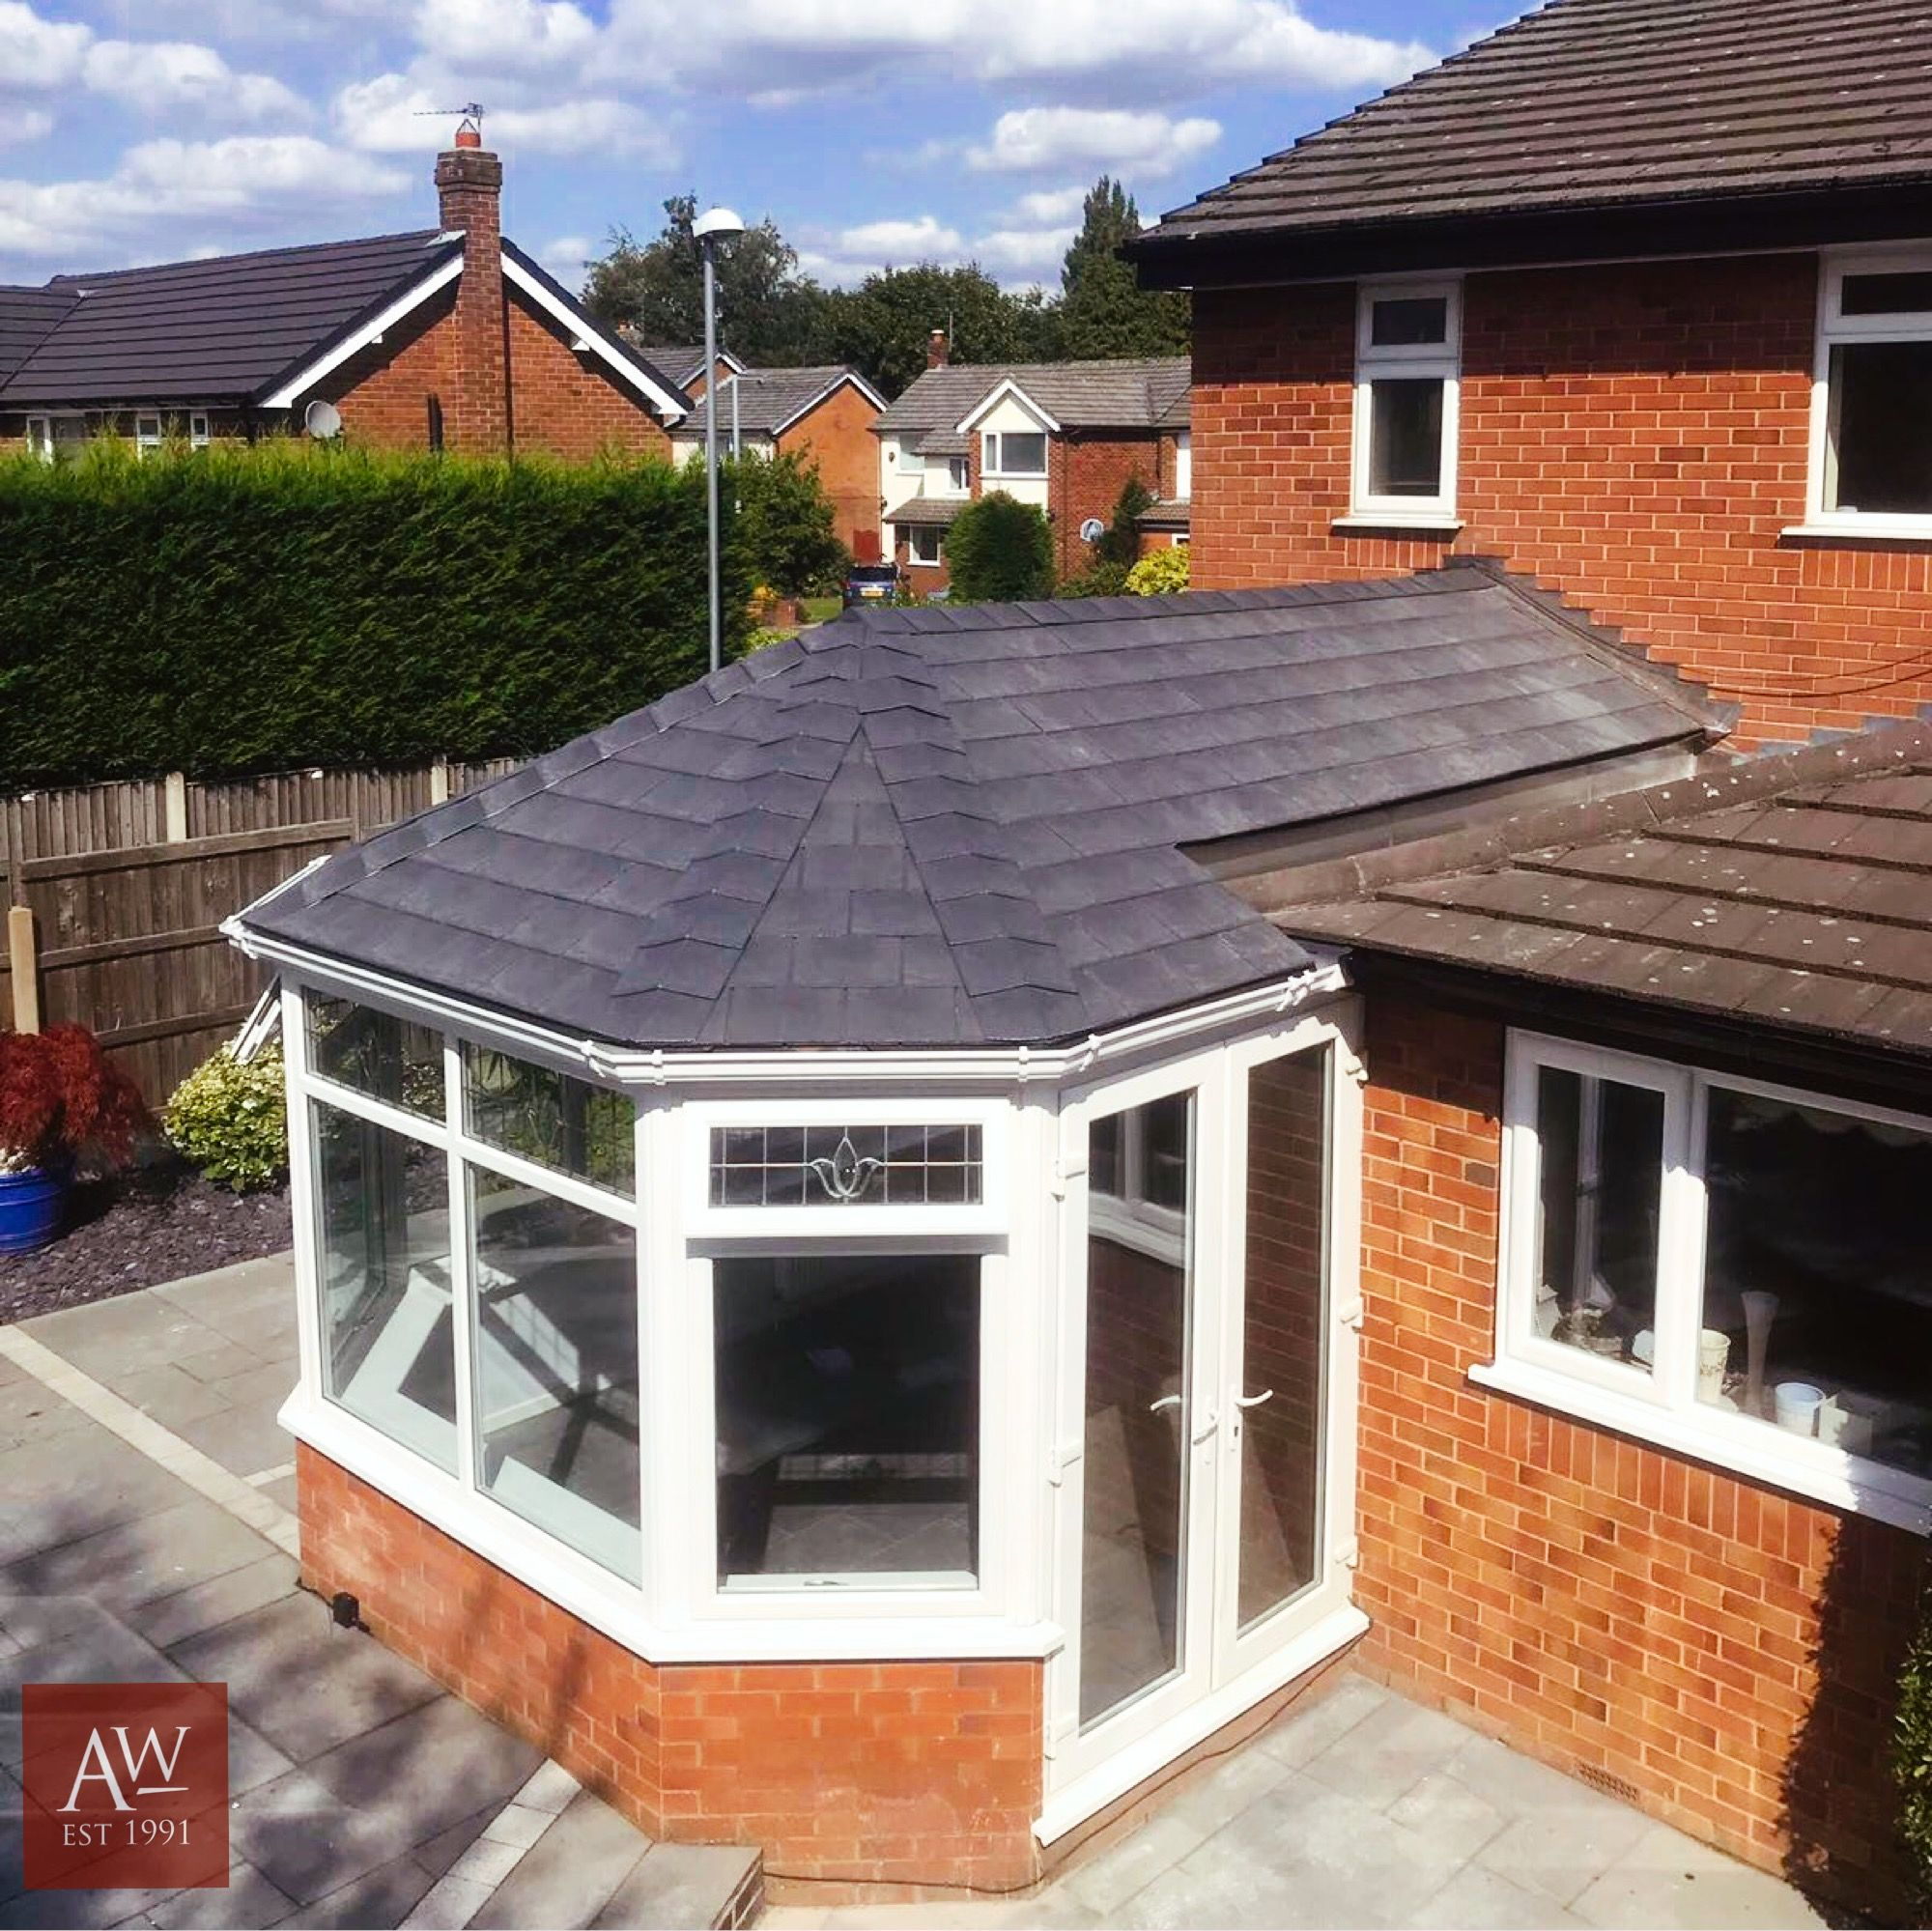 Guardian Roofs In Stockport Alexander Windows In 2020 Warm Roof Conservatory Roof Tiled Conservatory Roof